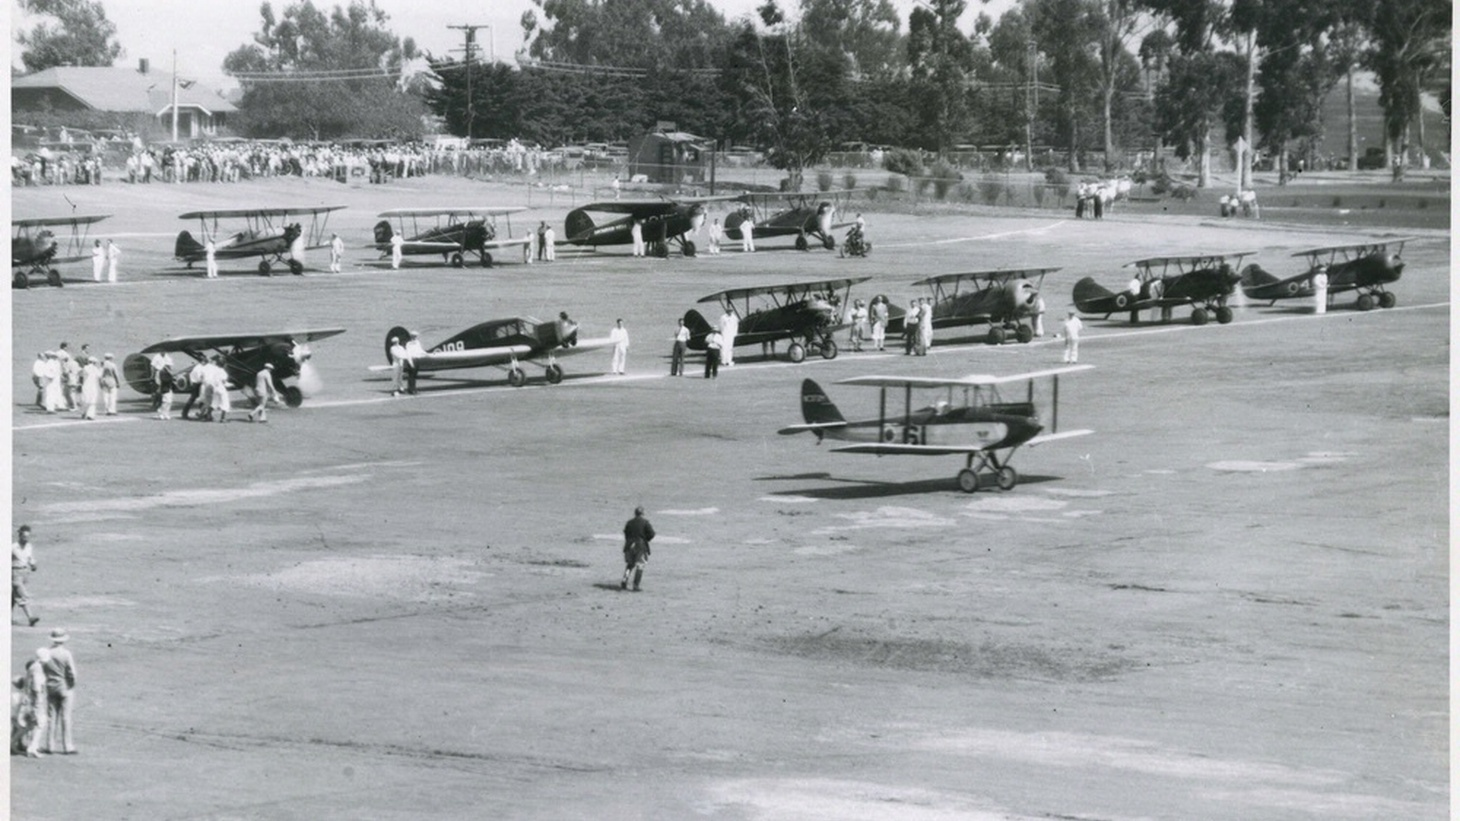 The 1929 Women's National Air Derby at Clover Field.